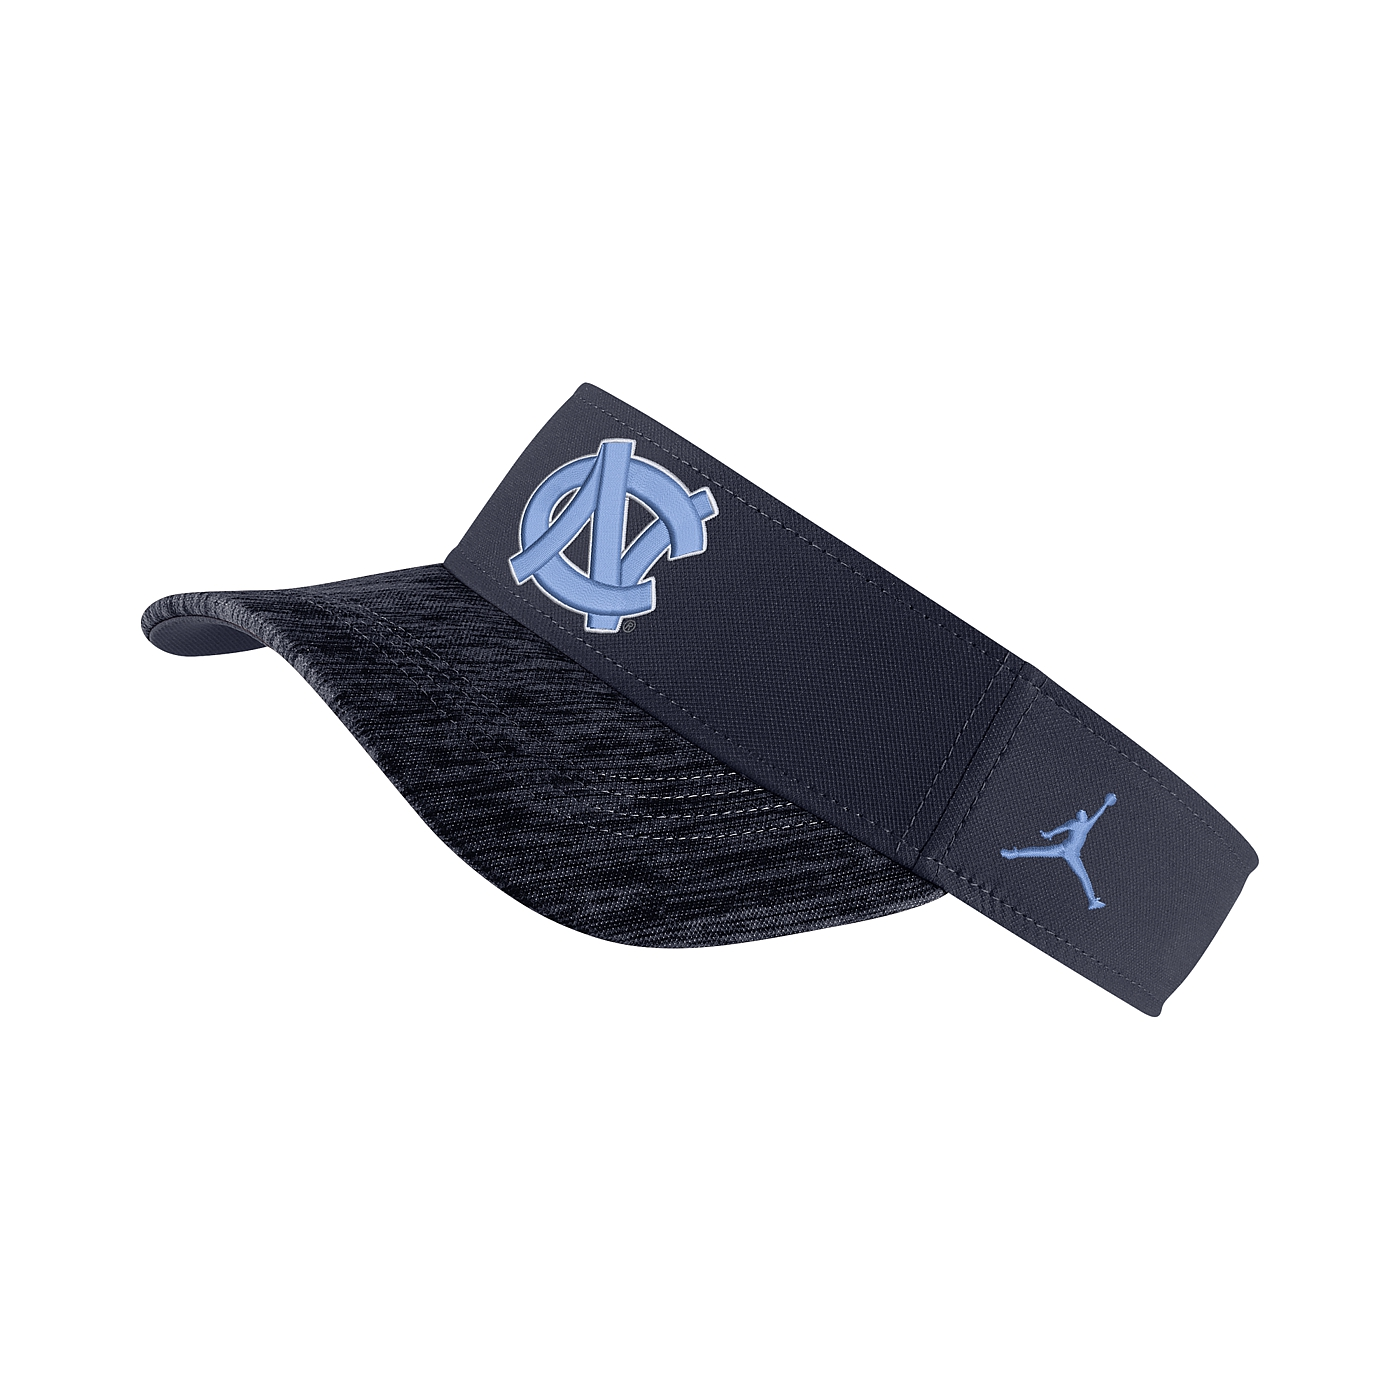 purchase cheap aab61 732f9 Johnny T-shirt - North Carolina Tar Heels - Our Newest Items - Nike Jumpman  Sideline Aerobill Visor (Navy) by Nike